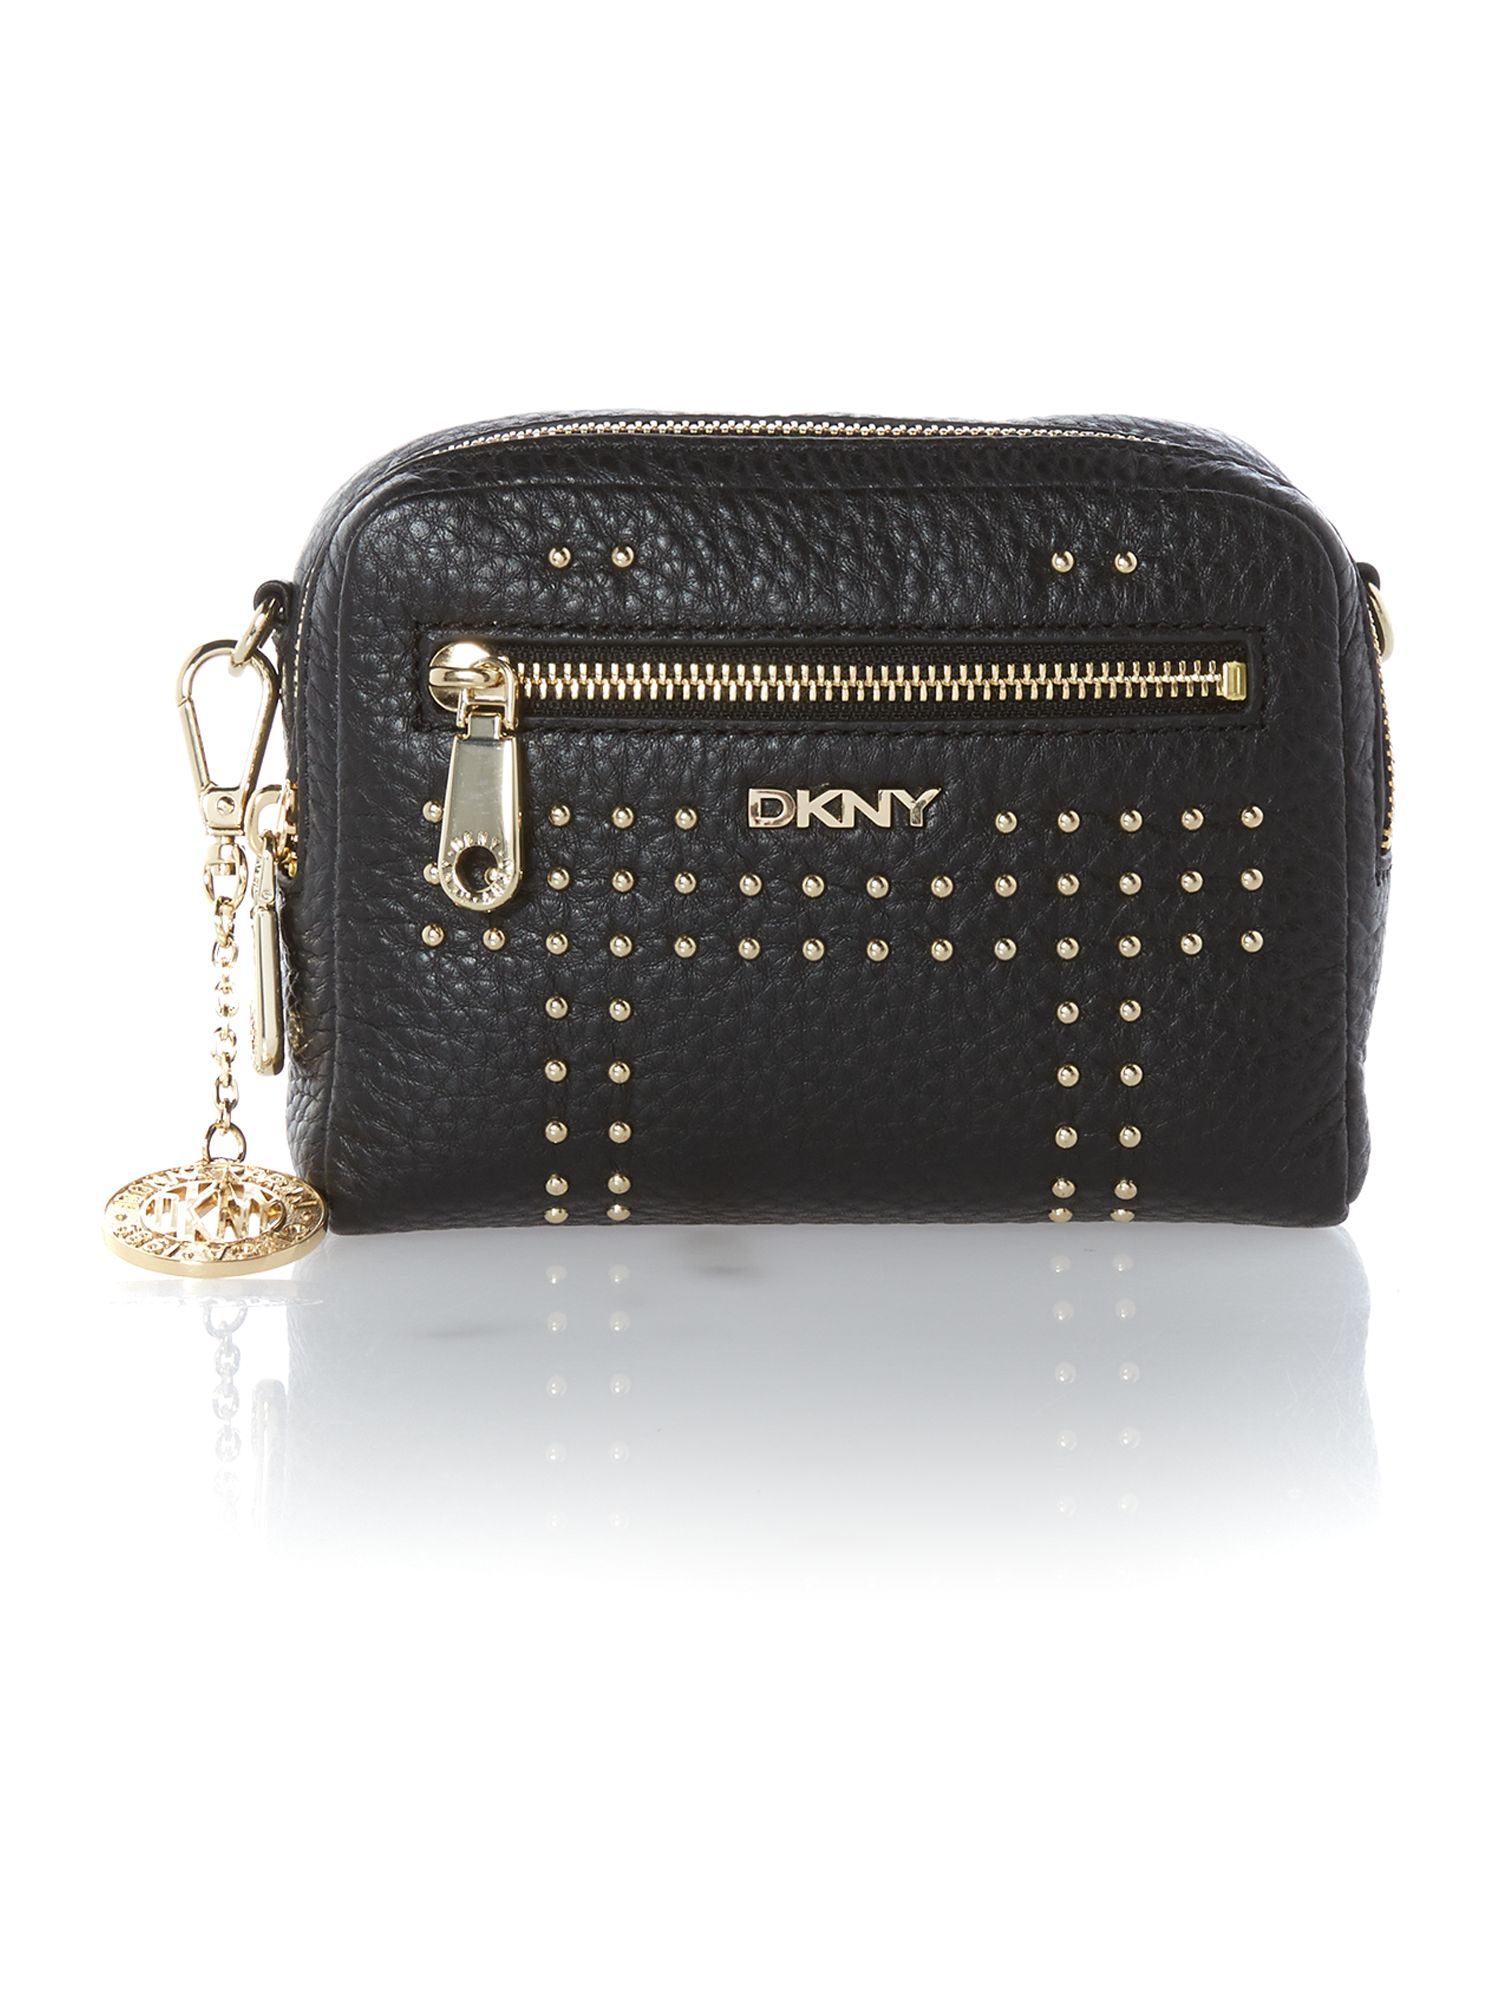 Tribeca black small cross body wristlet bag